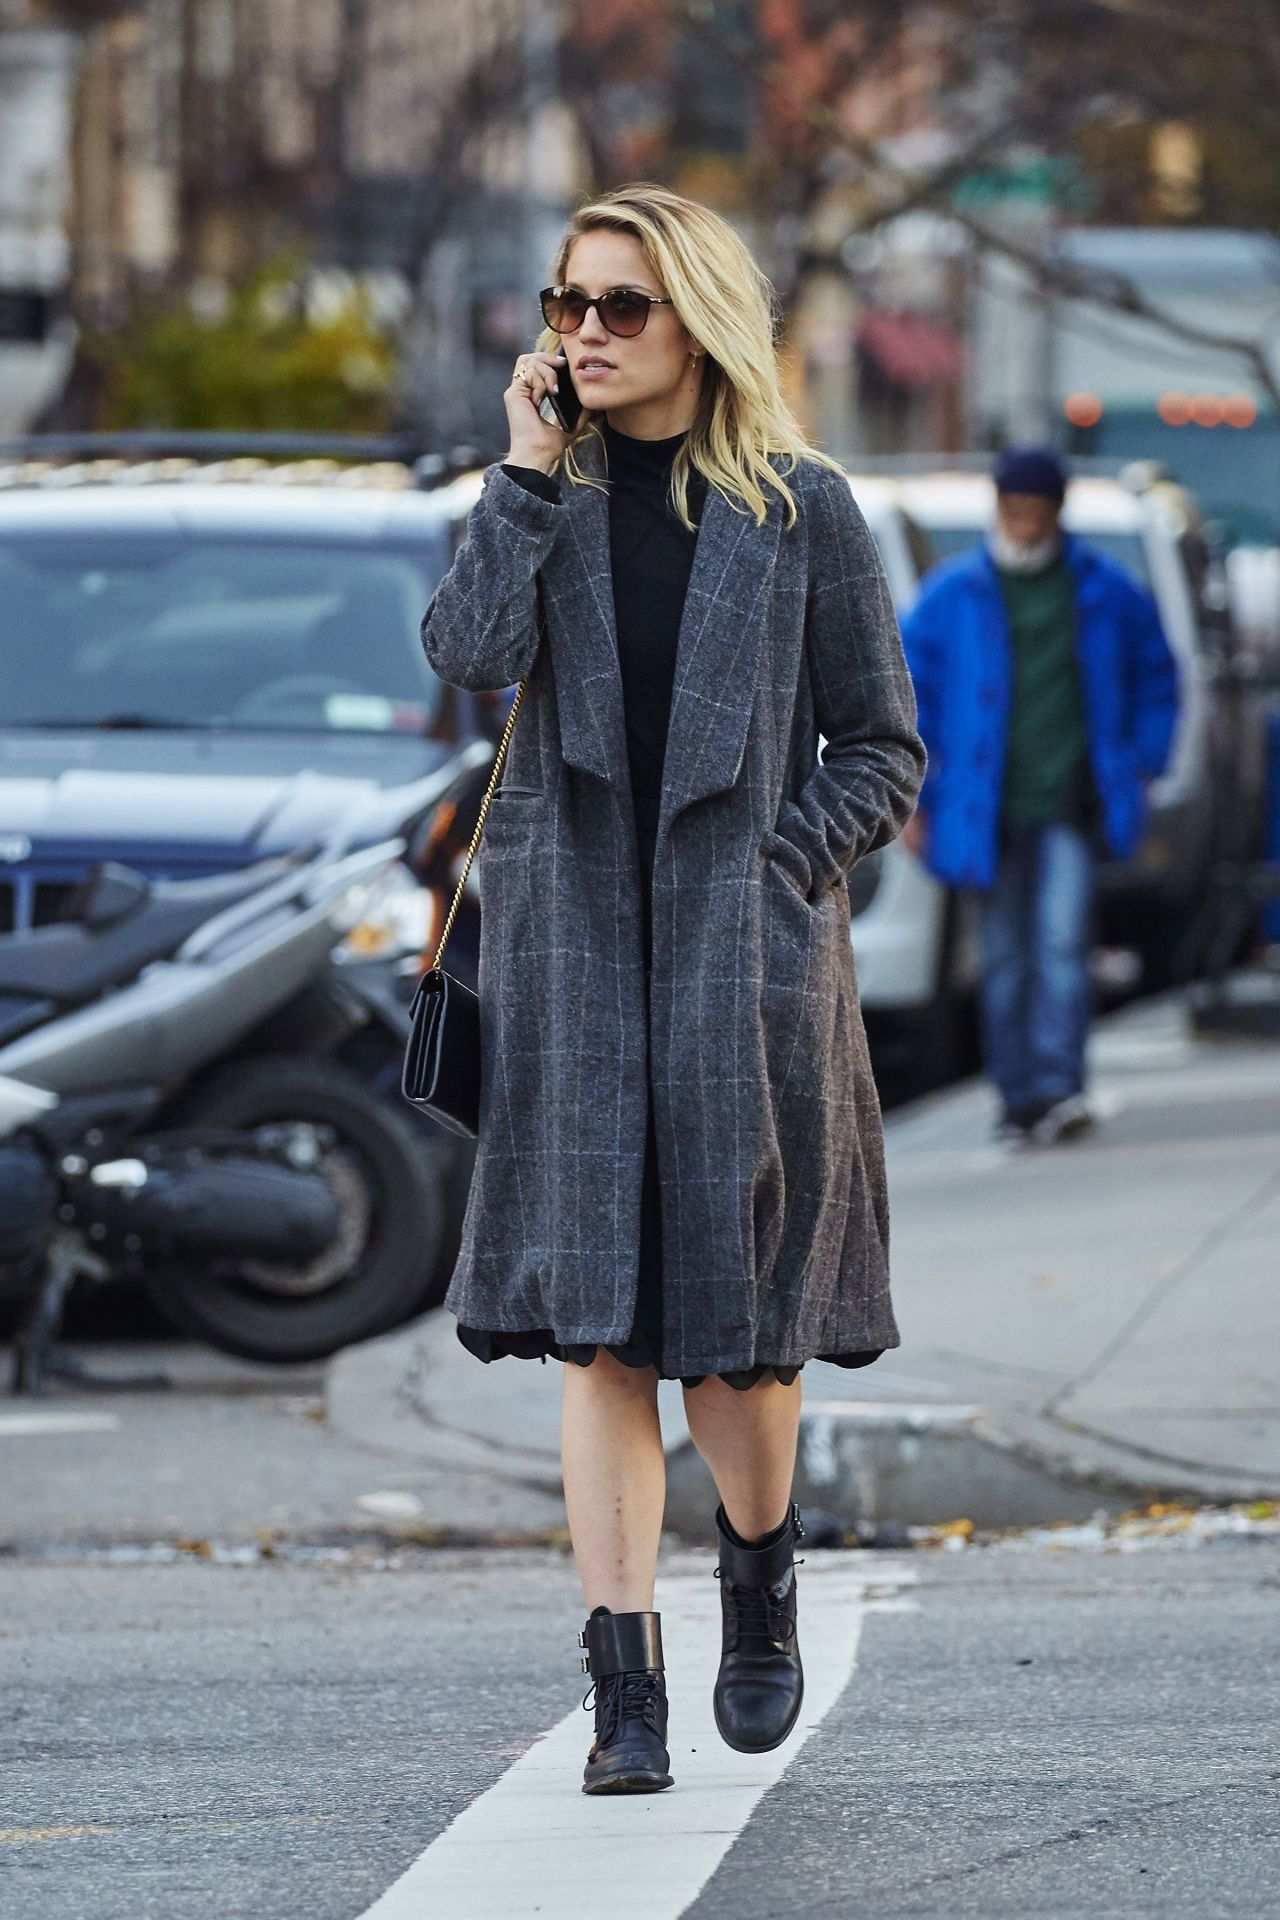 Creative Dianna Agron Street Style  39New Stone Age39 Store In West Hollywood